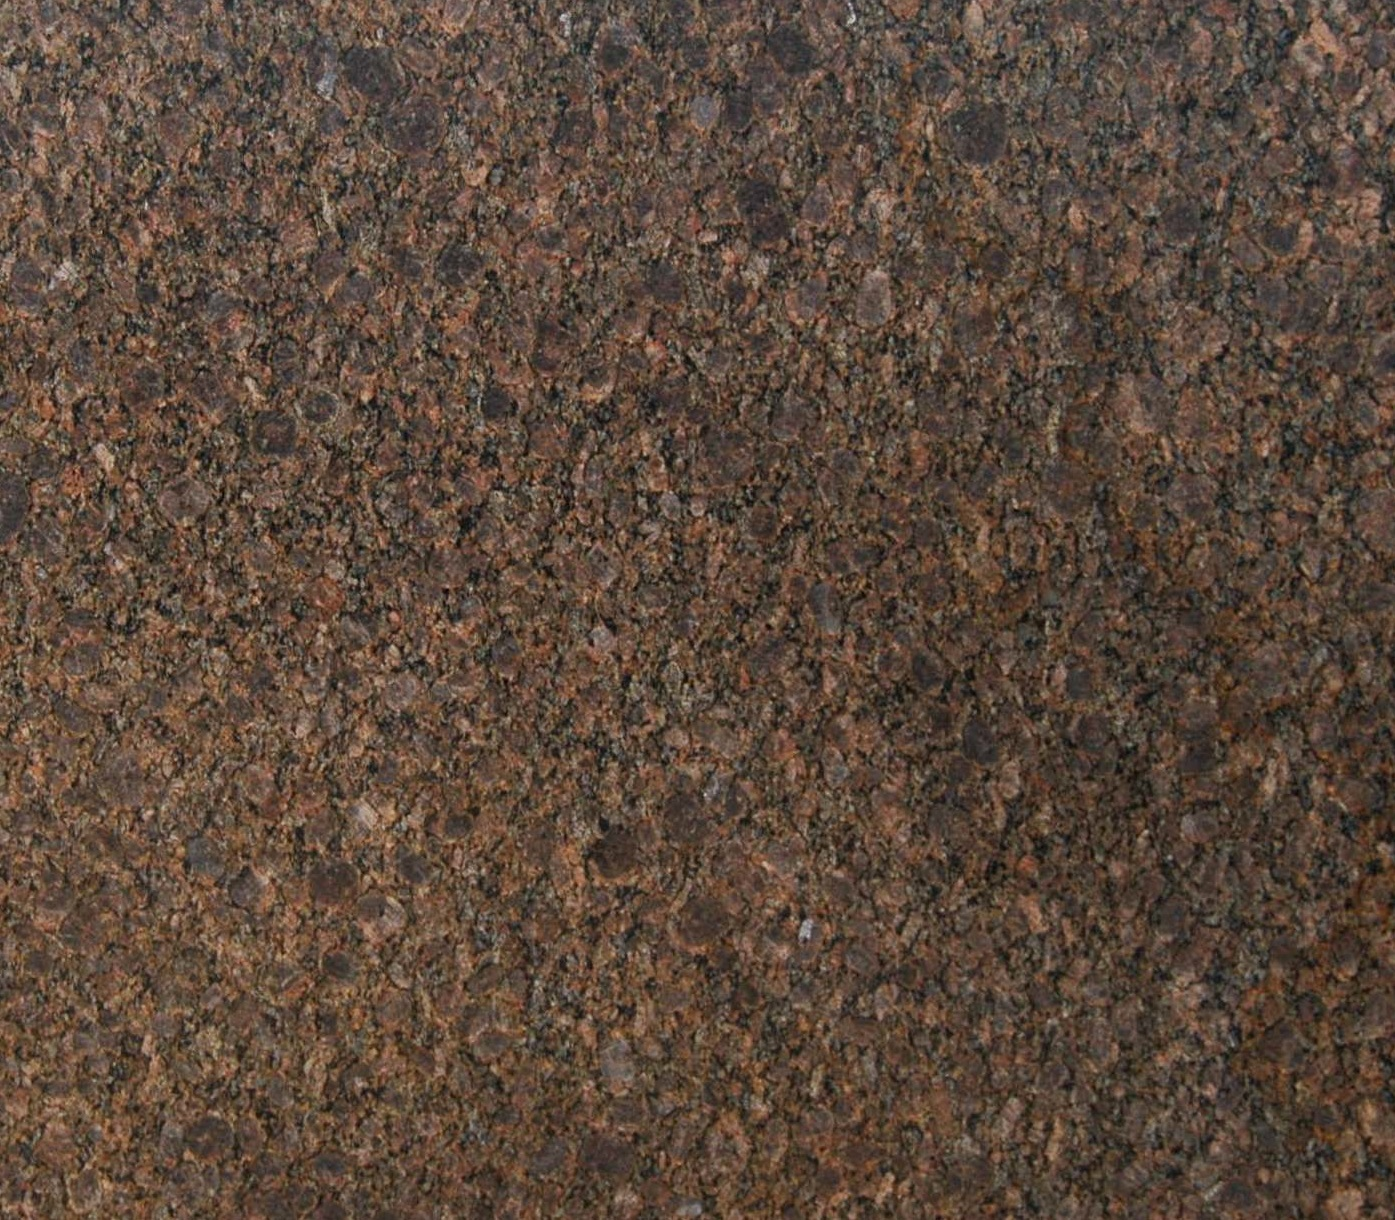 CASTOR BROWN GRANITE SLAB 20MM